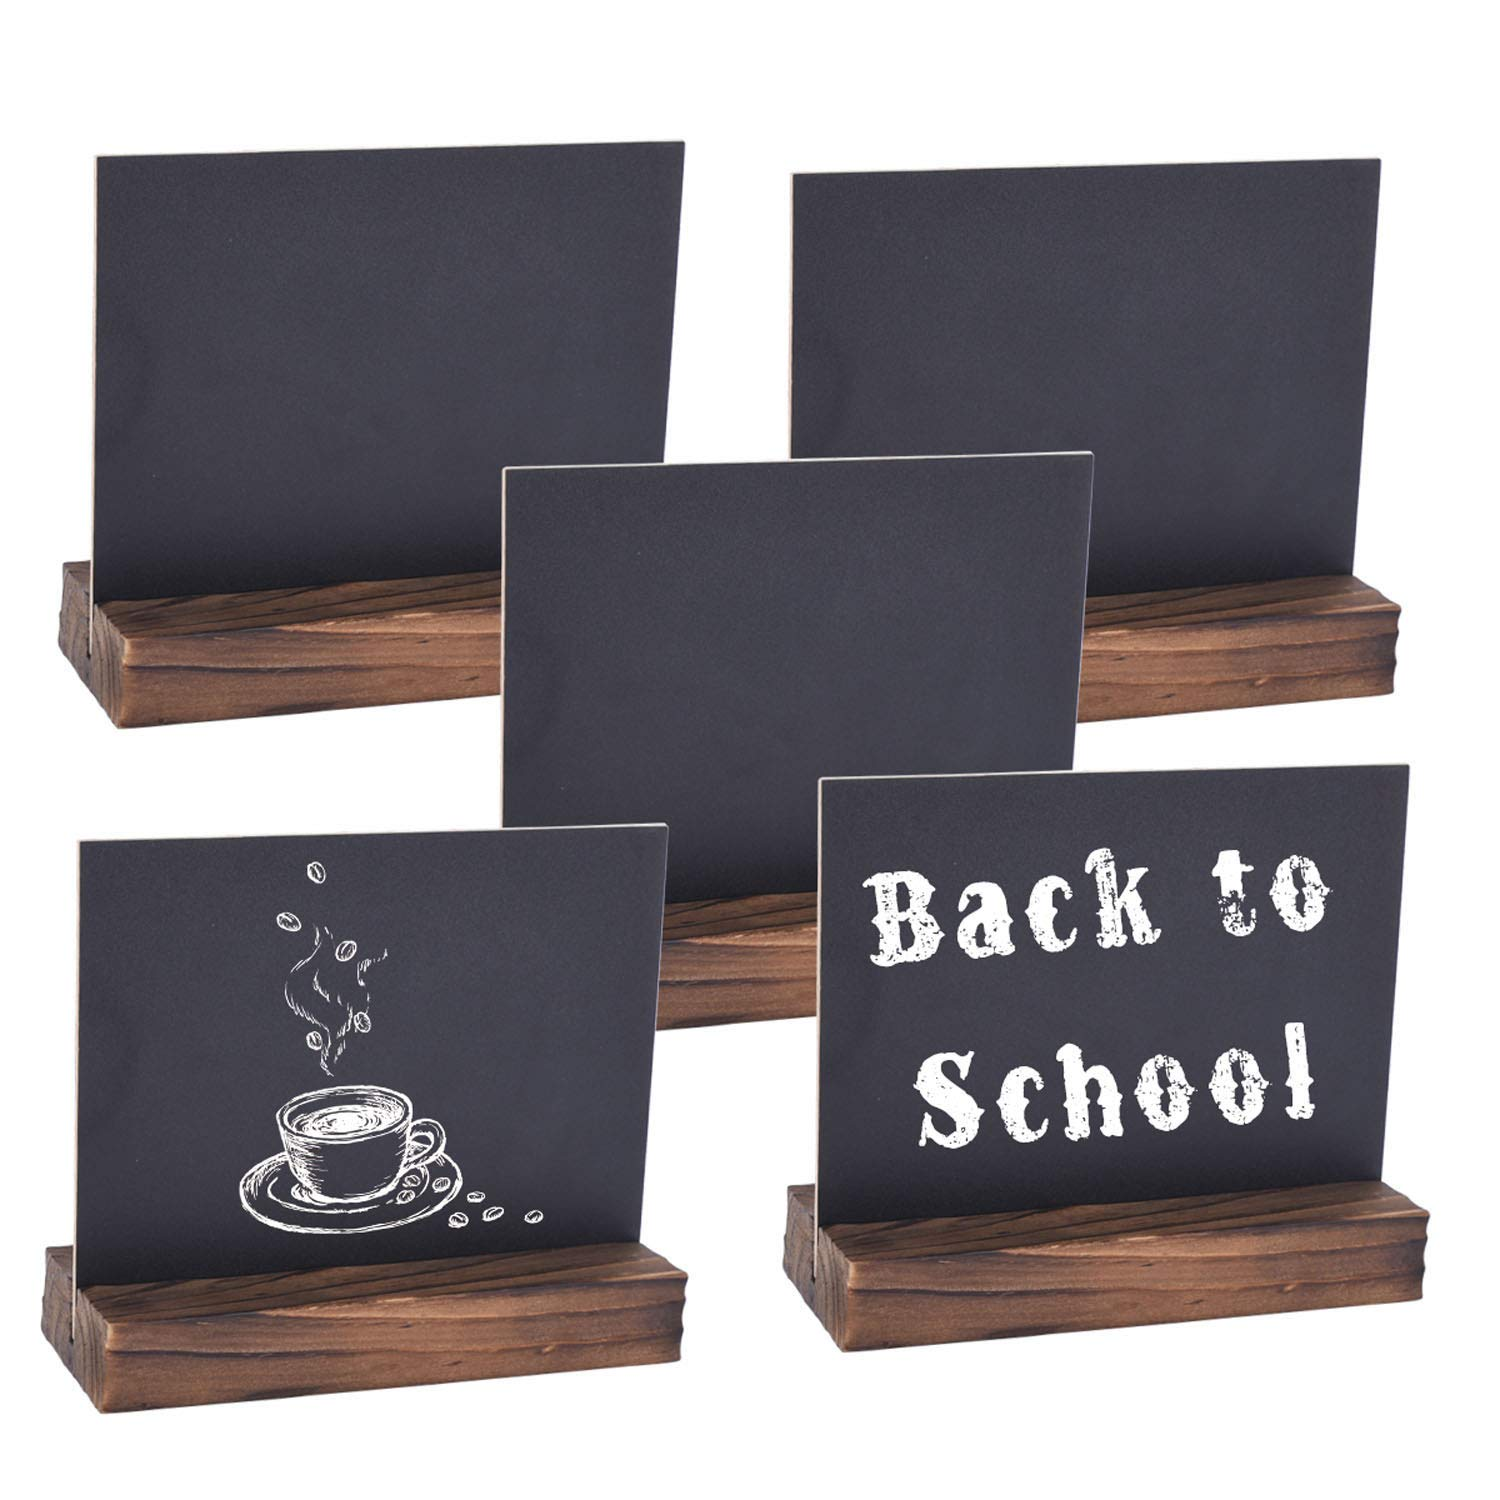 Autoark 5 x 6 inch Mini Tabletop Chalkboard Signs with Removable Wood Base Stands, Rustic& Vintage Style, 5 Pack, AOF-003